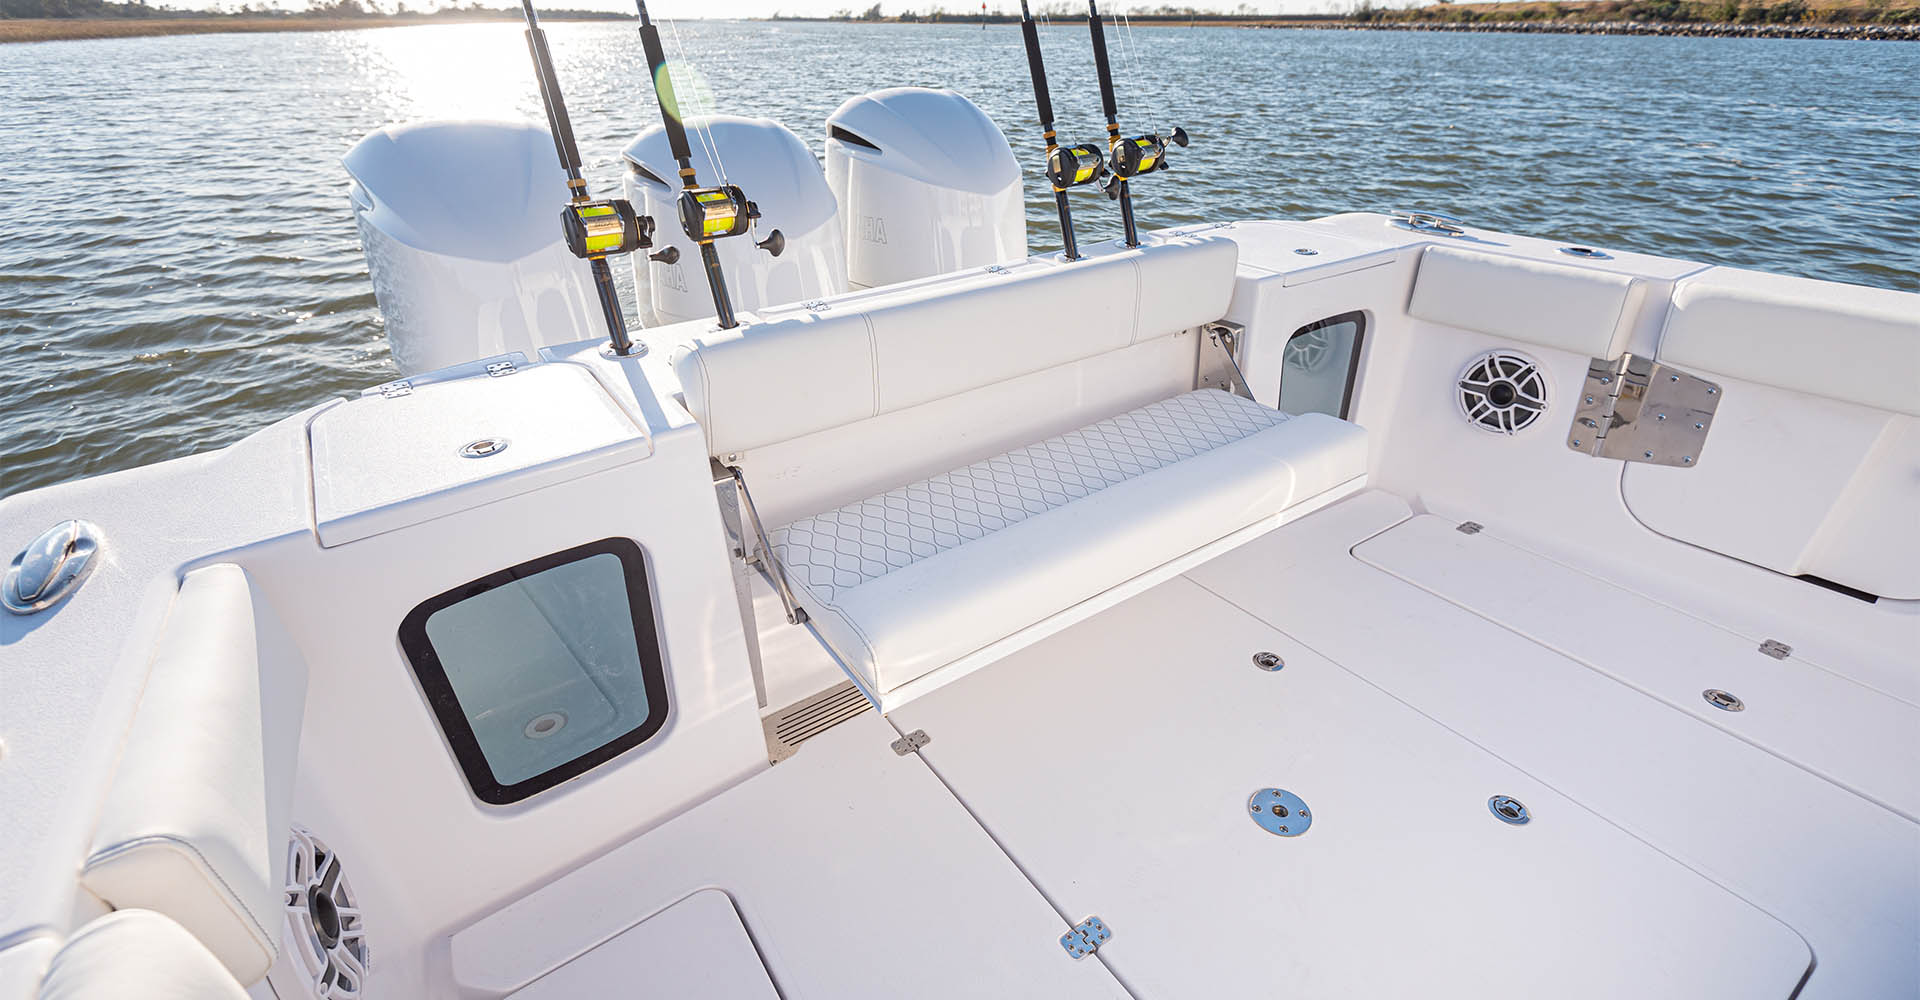 Main image of the Open 352 Center Console.